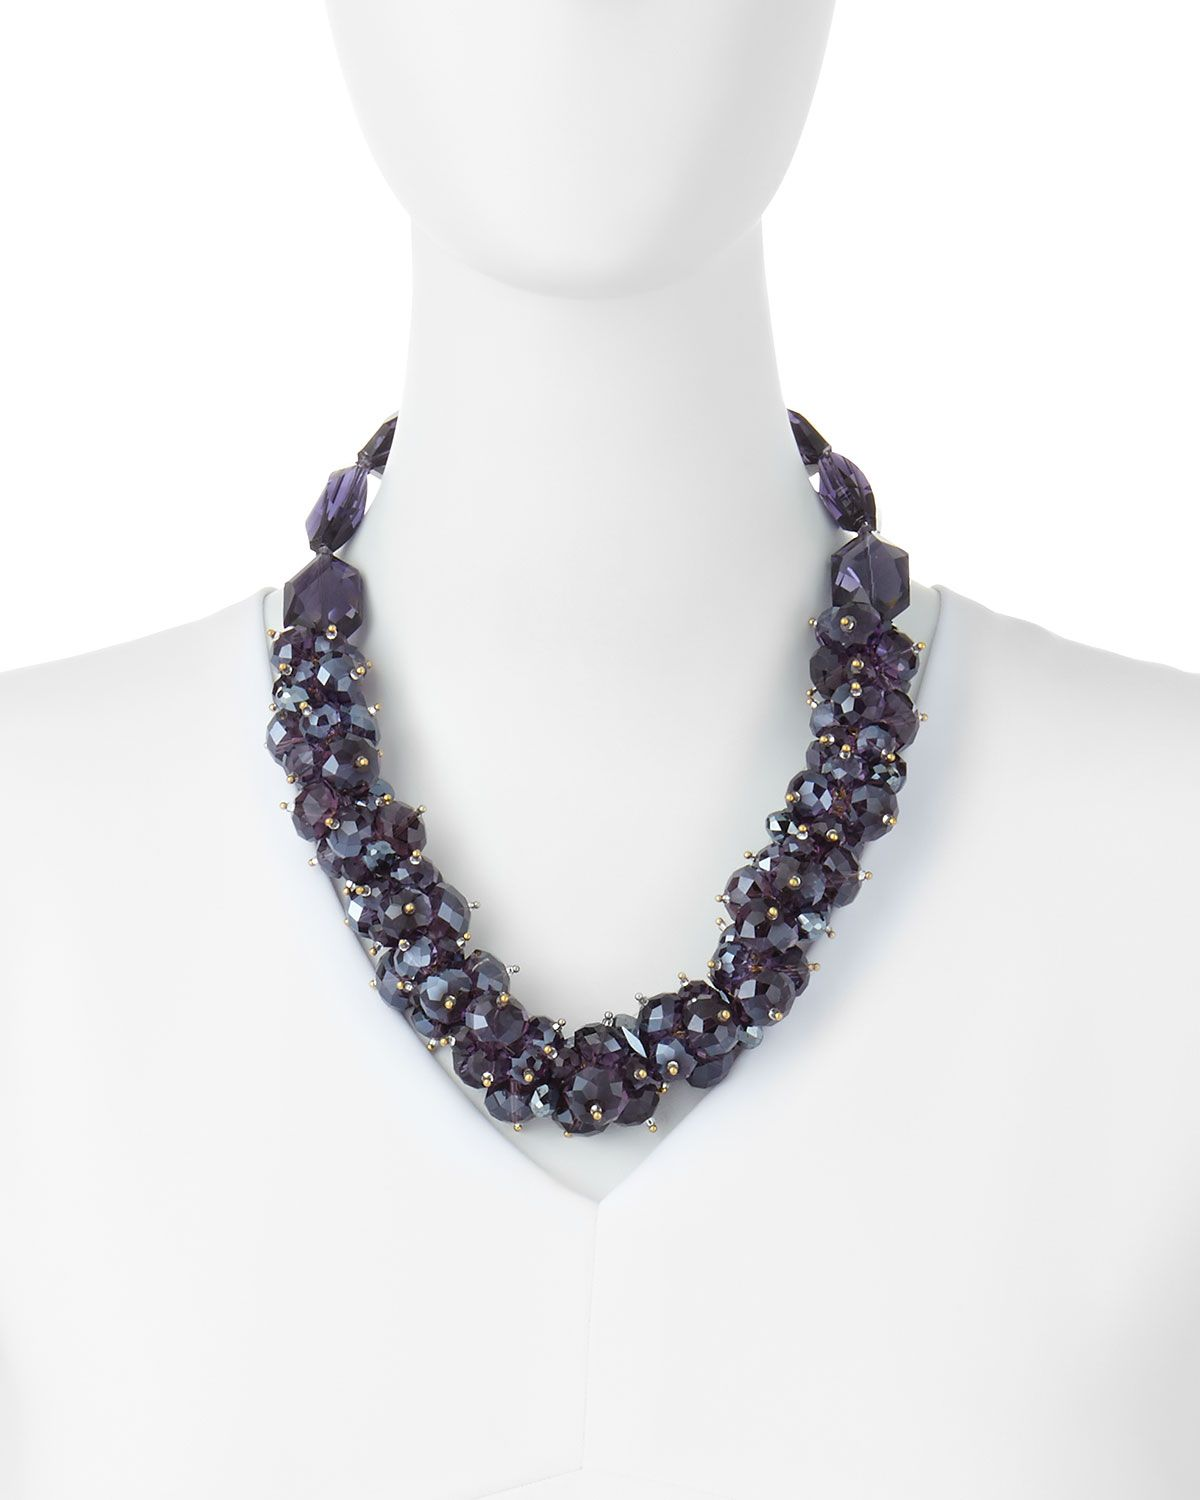 Beaded Cluster Necklace, Amethyst